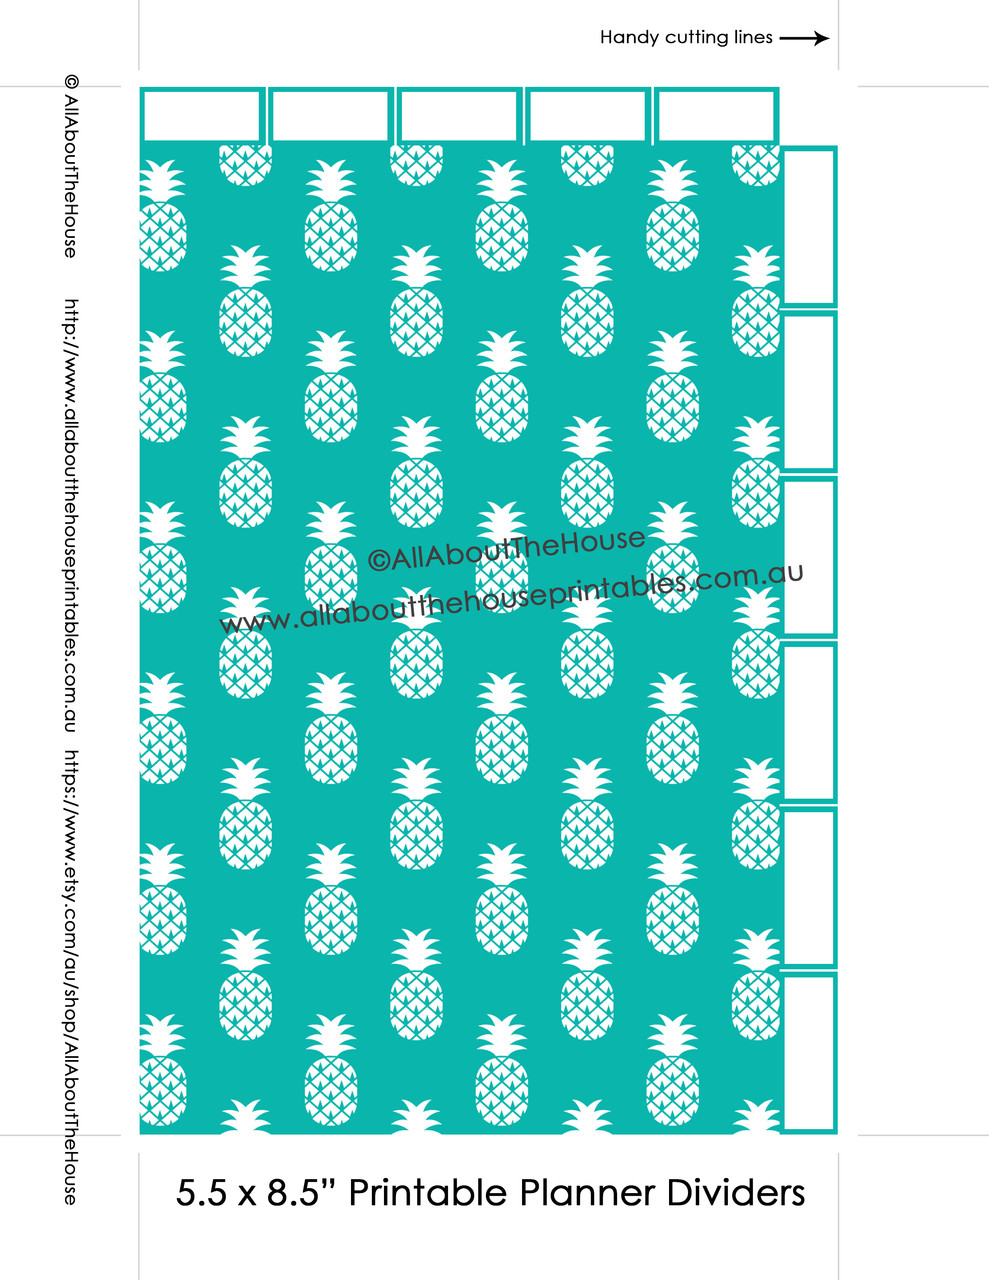 photo relating to Printable Divider Tabs identify Planner Dividers Pineapple Fifty percent Measurement Tabbed A5 Junior Arc Printable Binder Handles tabs - Quick Down load